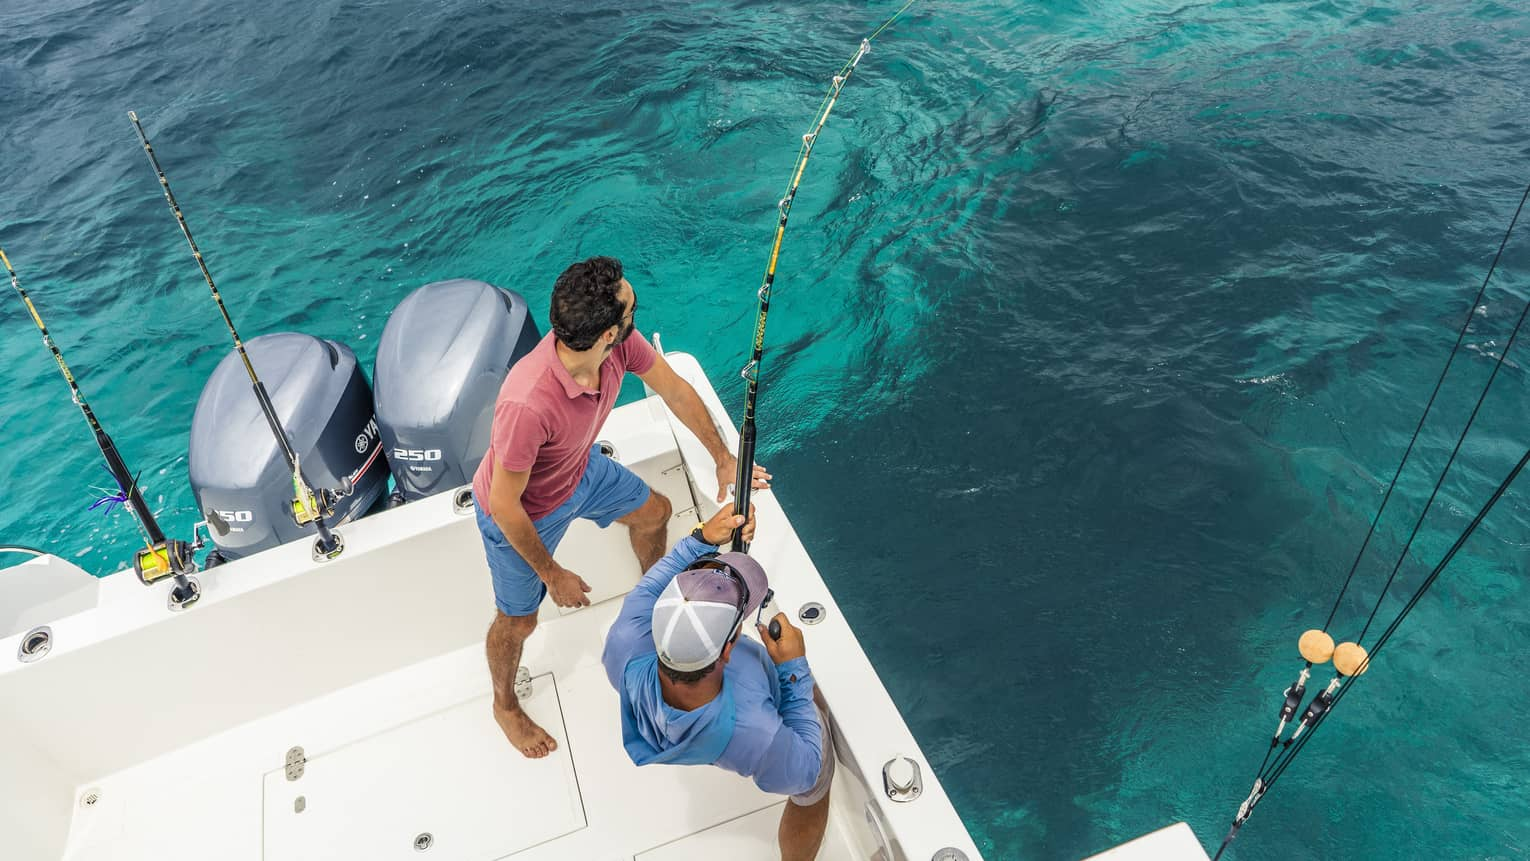 Two men deep sea fishing.